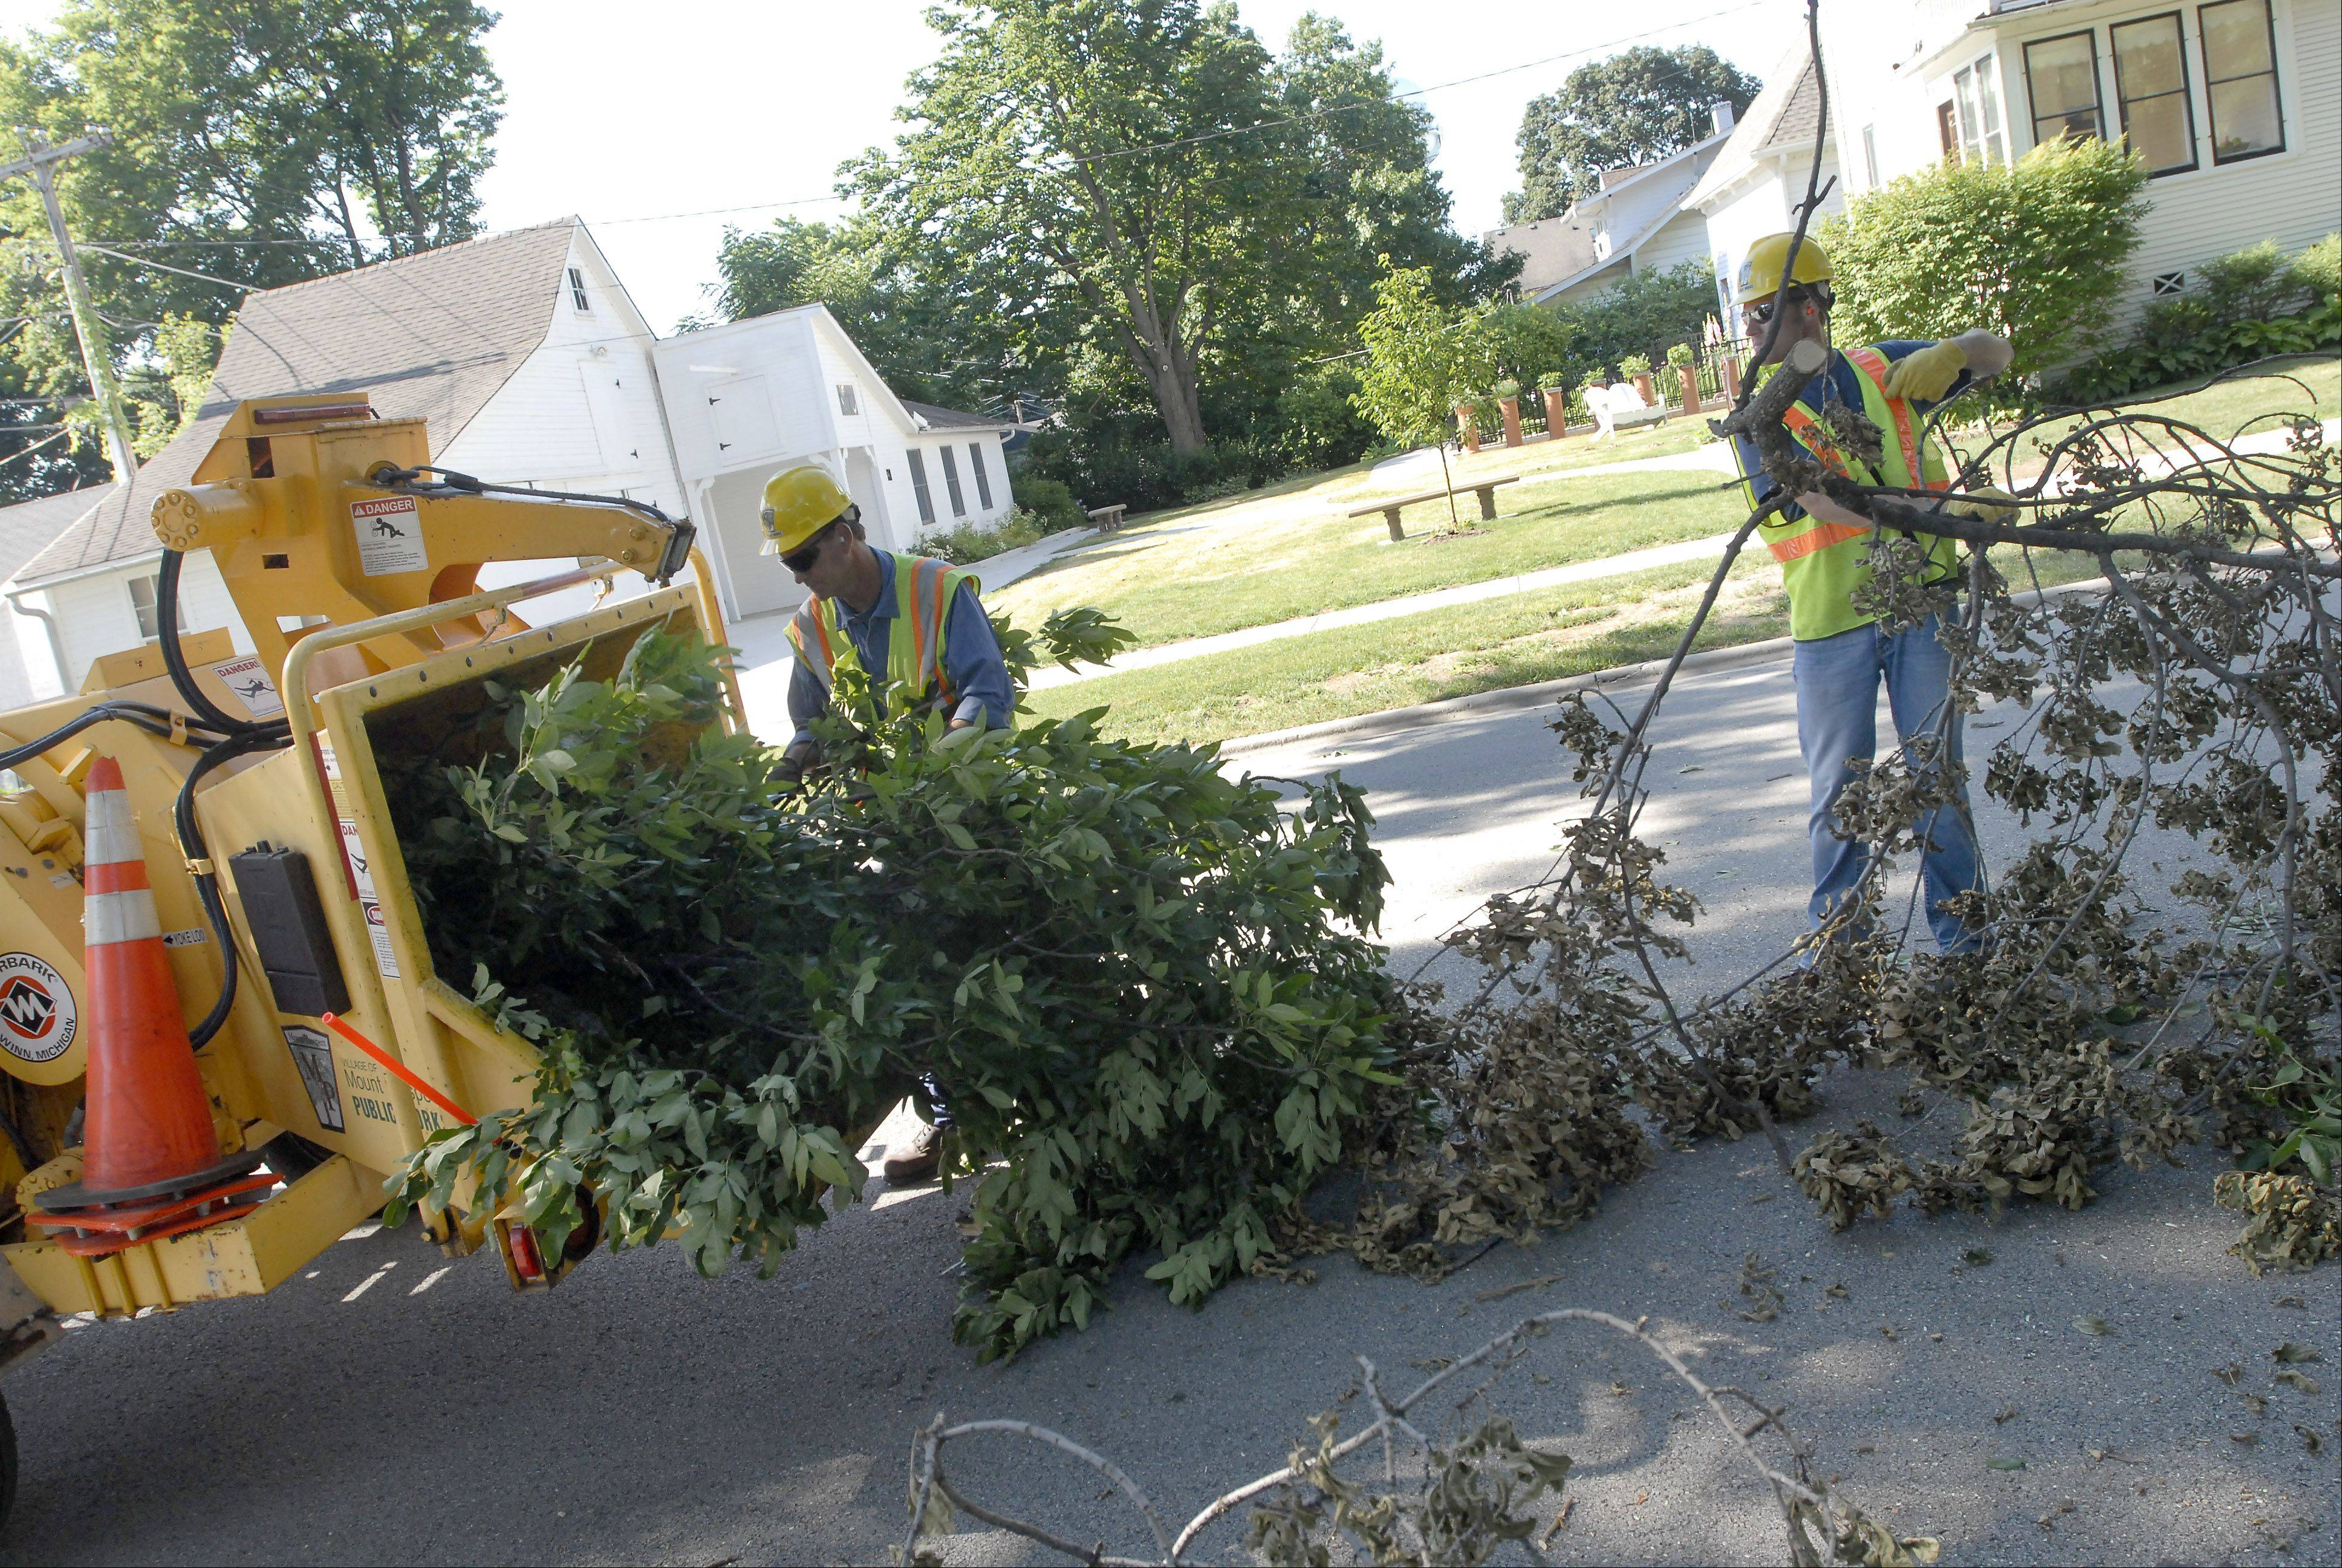 Arborist Andy Byers, left, and Doug Petro, with the Mount Prospect Forestry Division clean up debris Tuesday morning following yesterday's storm that left over 800,000 Com Ed customers without power.